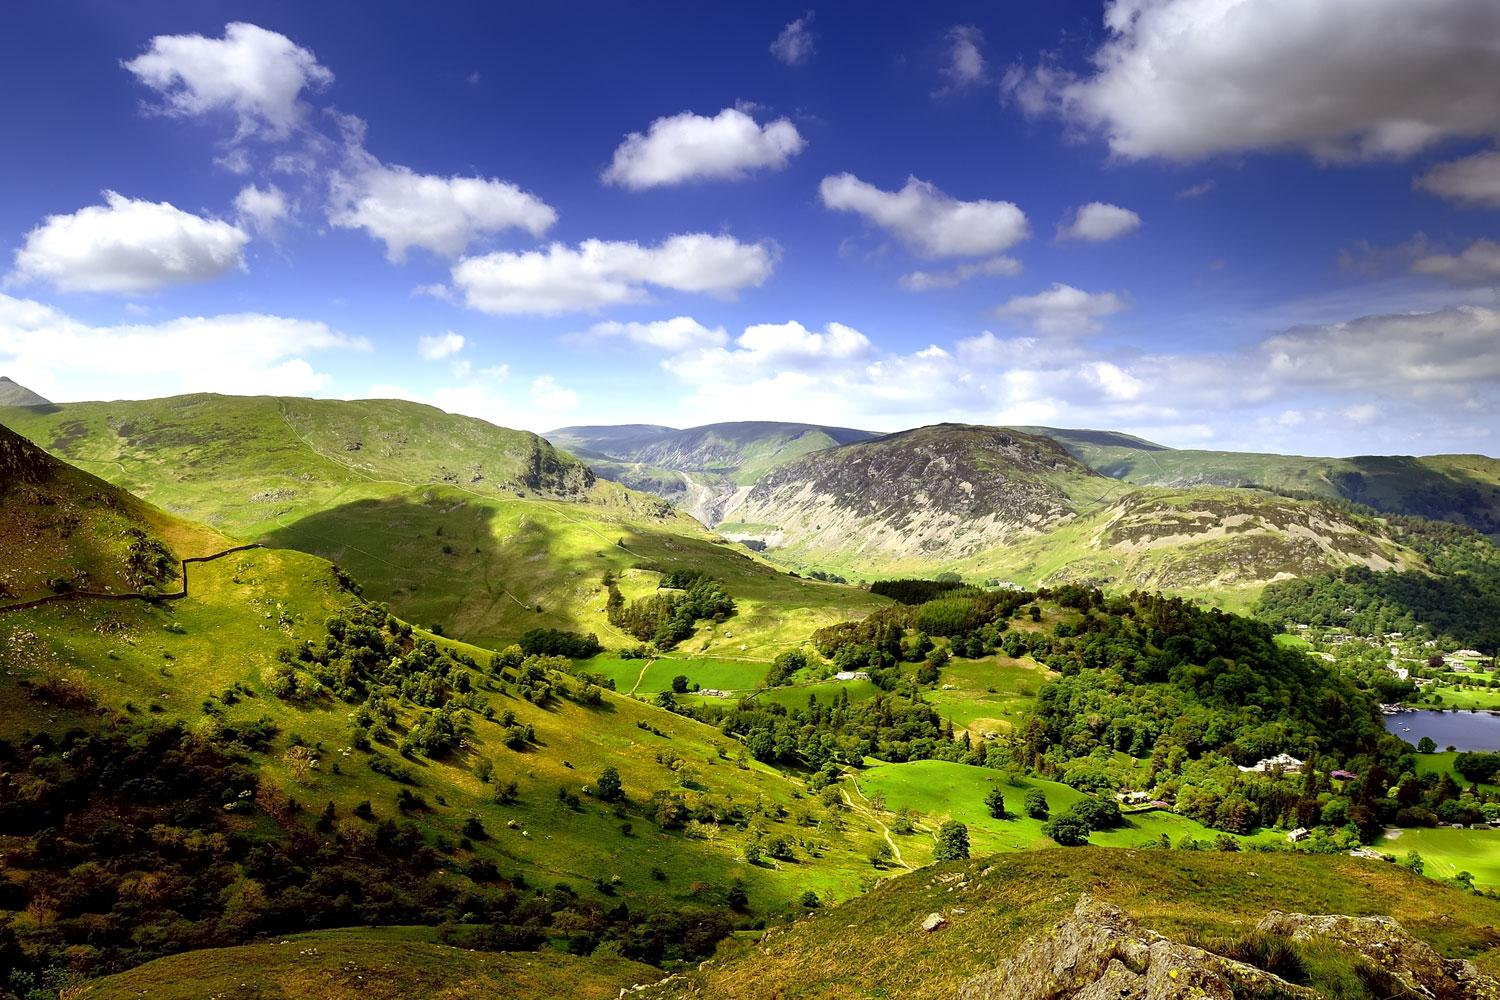 Glorious views over Patterdale